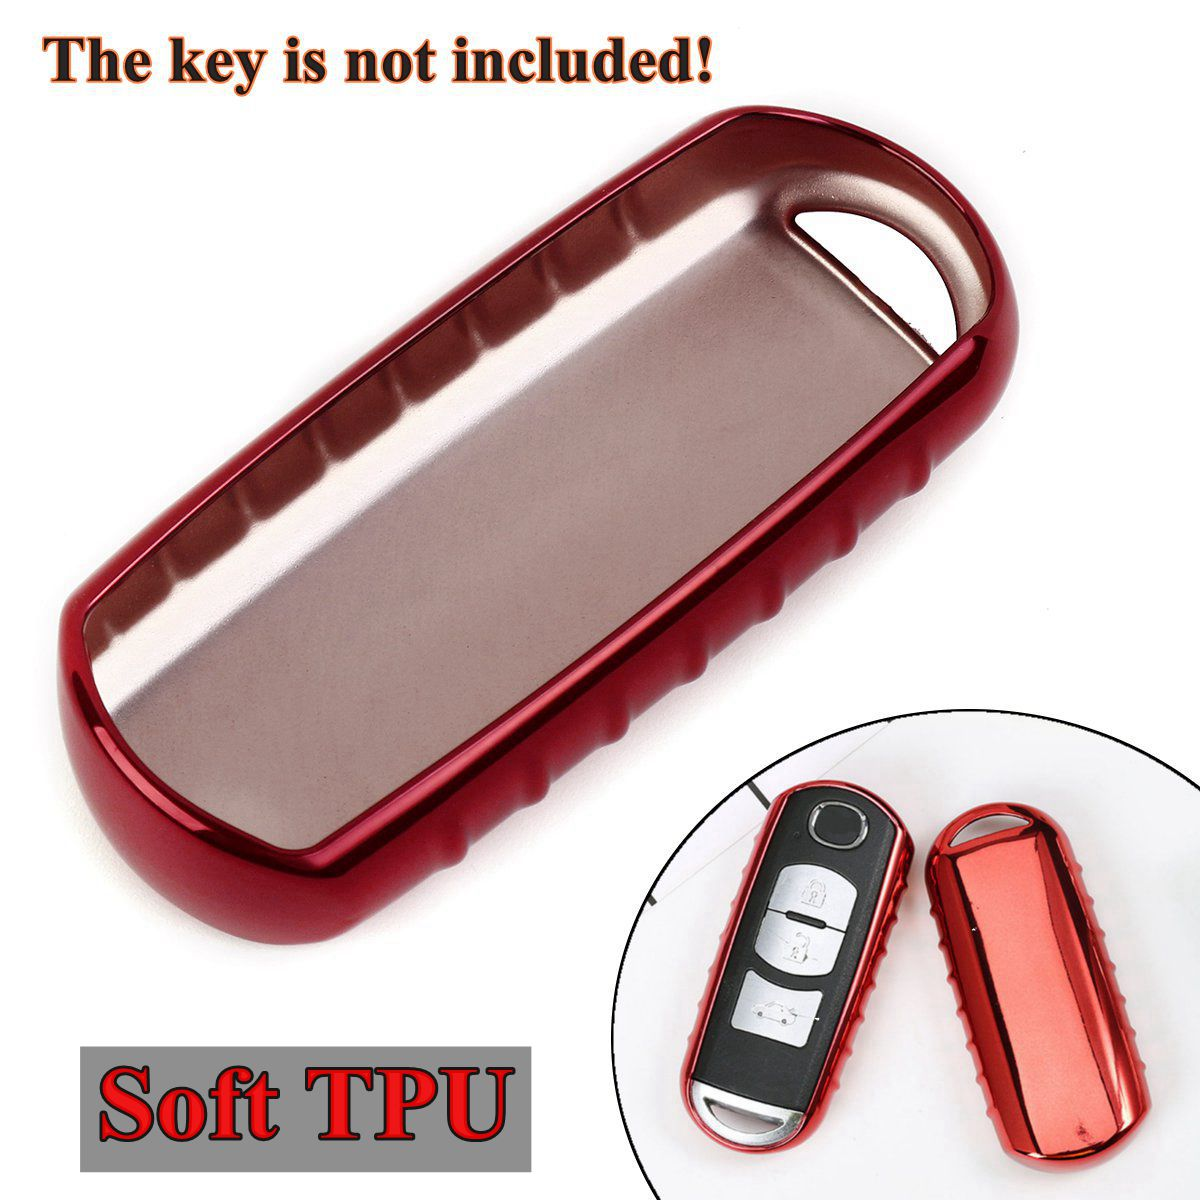 Tpu Remote Key Cover Case Fob Bag Shell For Mazda 2 3 5 6 Cx3 Cx-4 Cx-5 Cx-7 Cx-9 Mx5 2009 2010-2013 2014 2015-2017 Car Styling